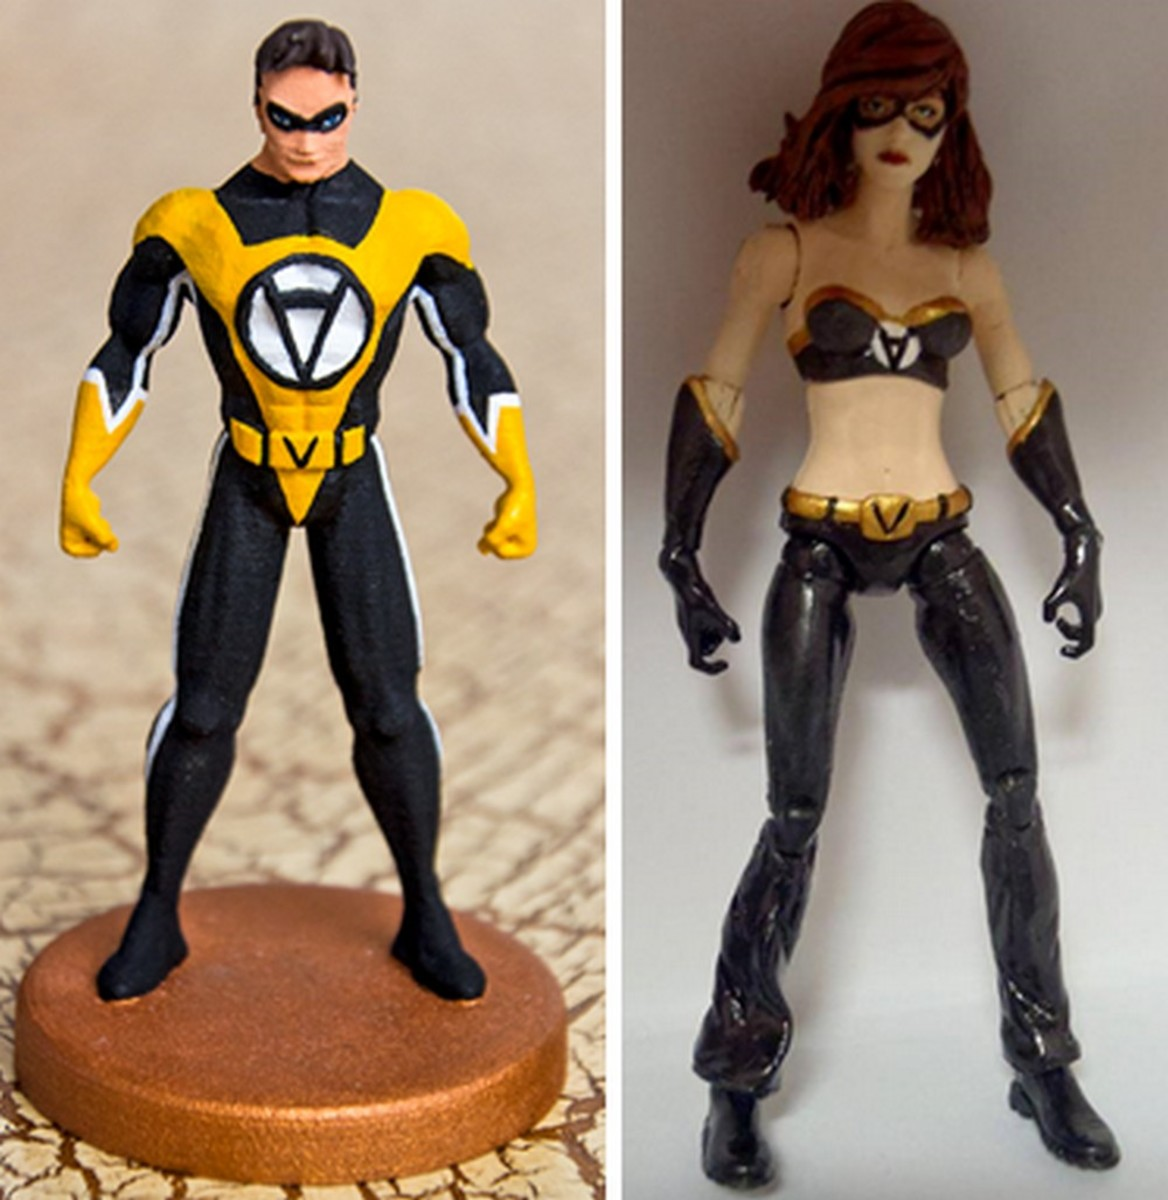 Voluntaryist and Voluntaria: Not just comic book characters but action figures too! Suitable for your room, your desk or your dashboard.